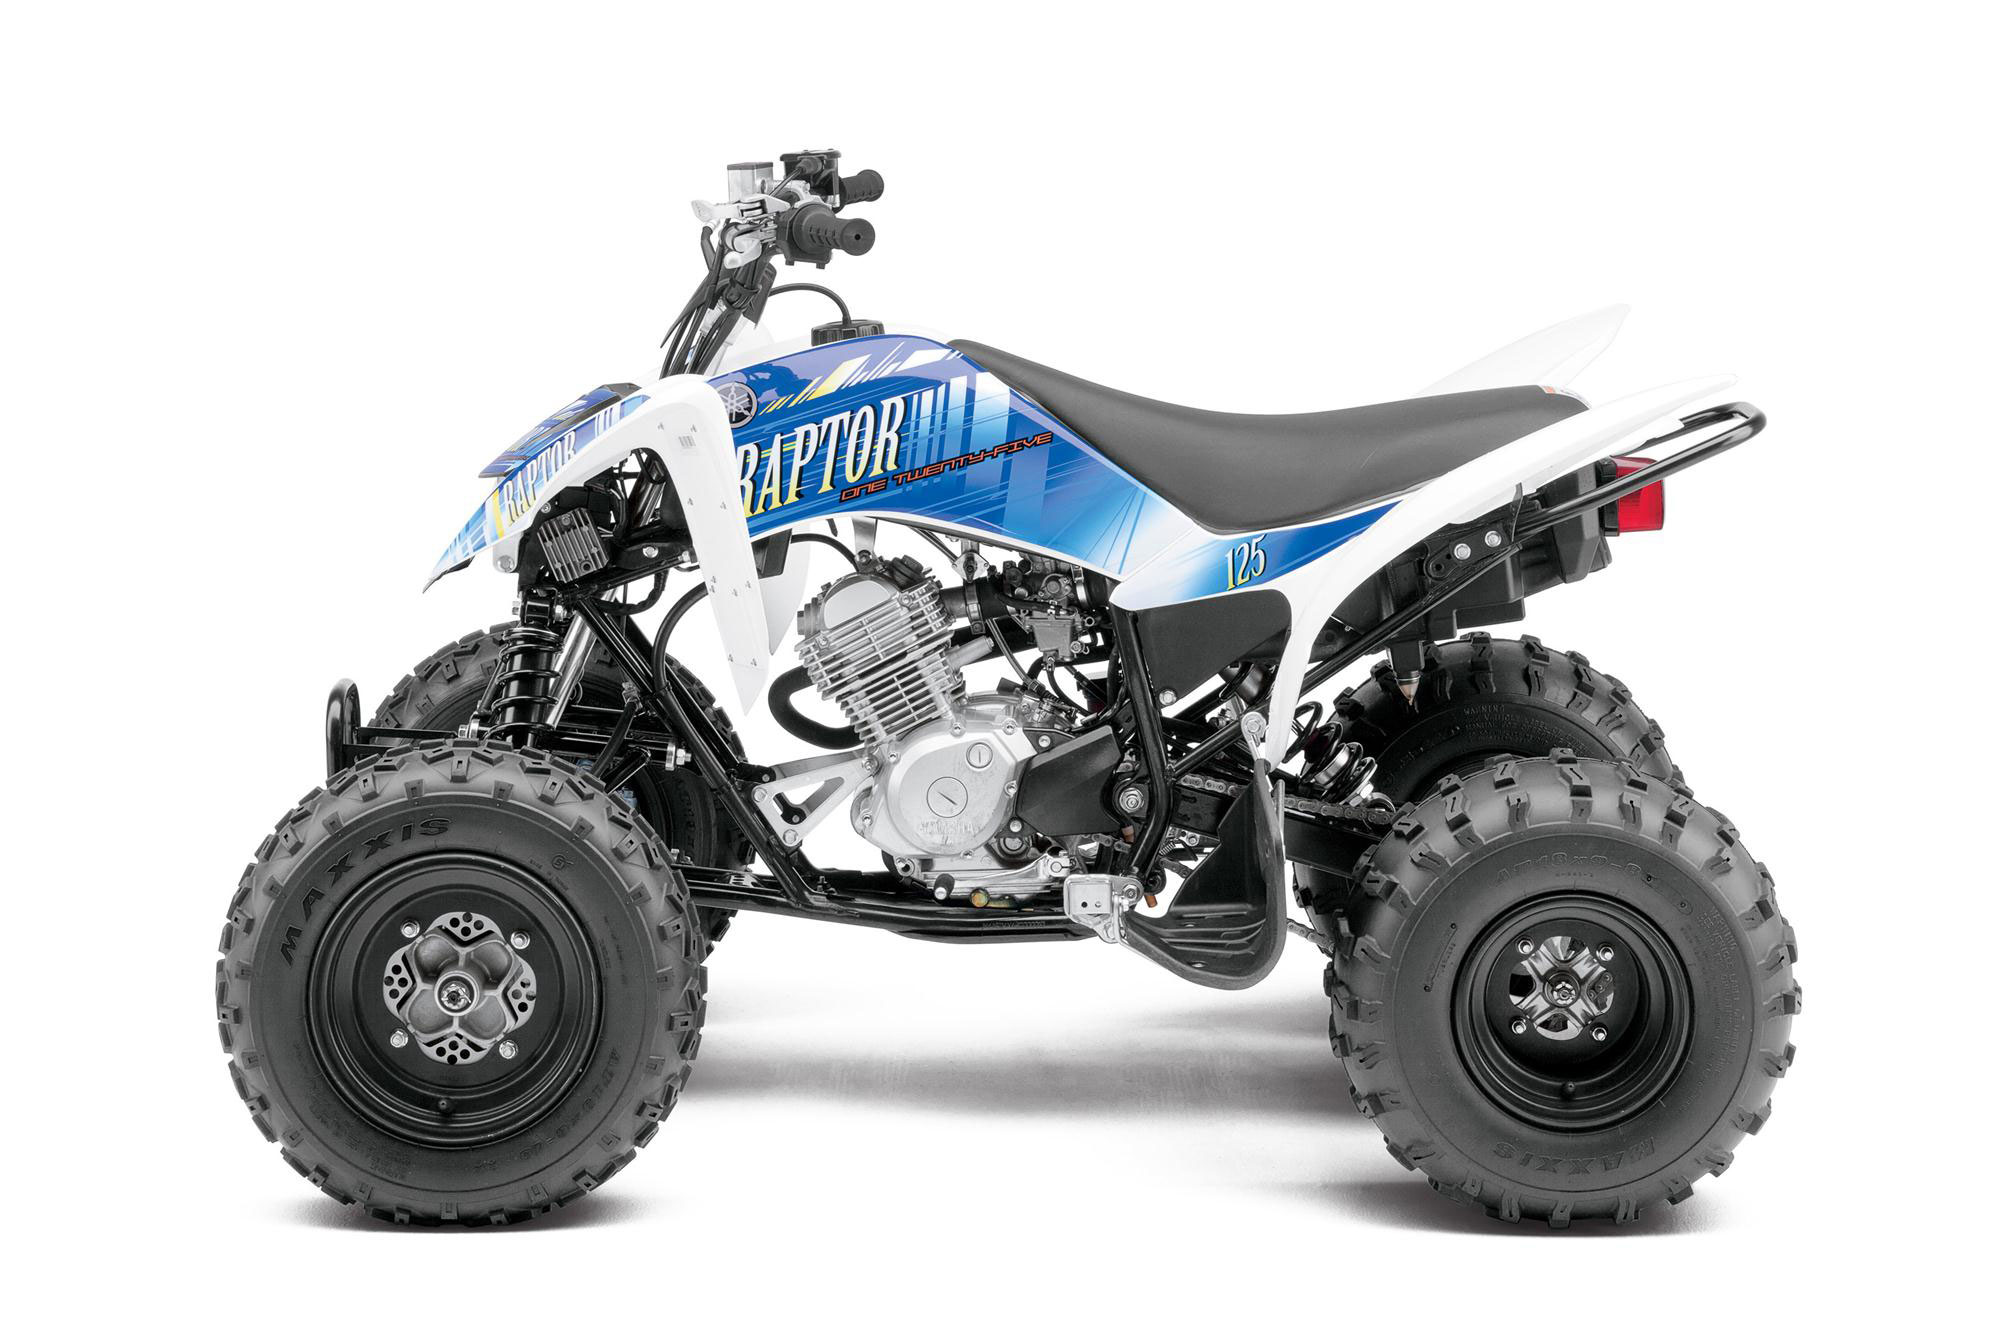 2013 yamaha raptor 125 review. Black Bedroom Furniture Sets. Home Design Ideas